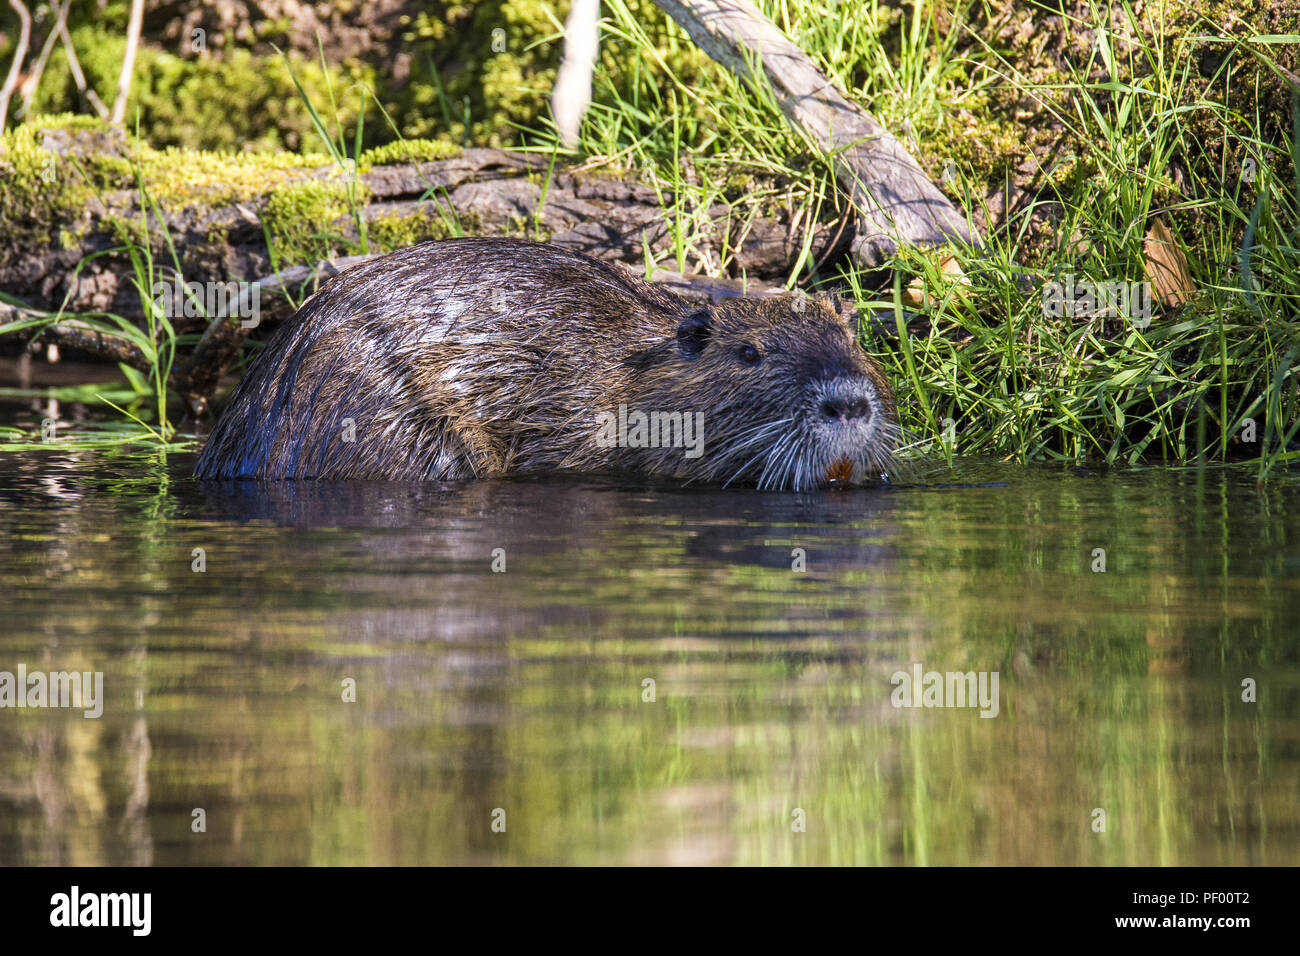 August 15, 2018 - Rust, Baden-Wurttemberg, Germany - Nutria swims past the boat on a boat trip through the nature reserve Taubergießen near the Europa-Park Rust Credit: Jannis Grosse/ZUMA Wire/Alamy Live News - Stock Image